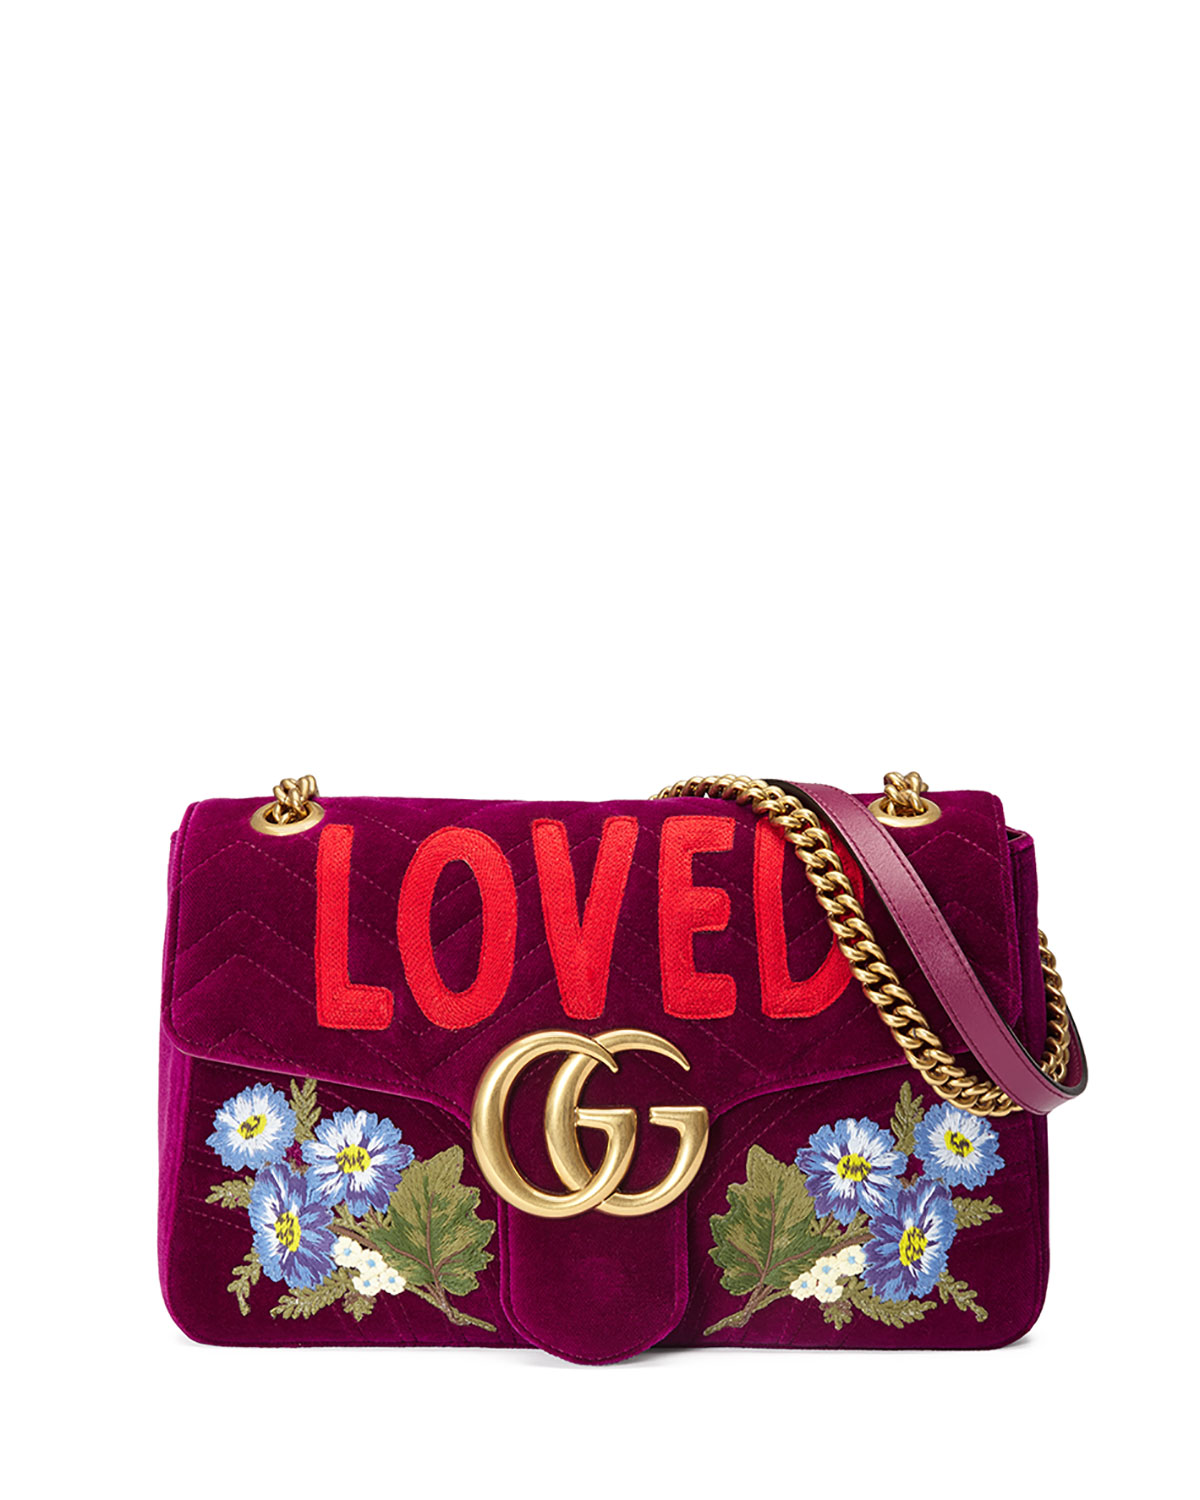 3dba5d8842ba Gucci GG Marmont Small Loved Shoulder Bag, Fuchsia | Neiman Marcus